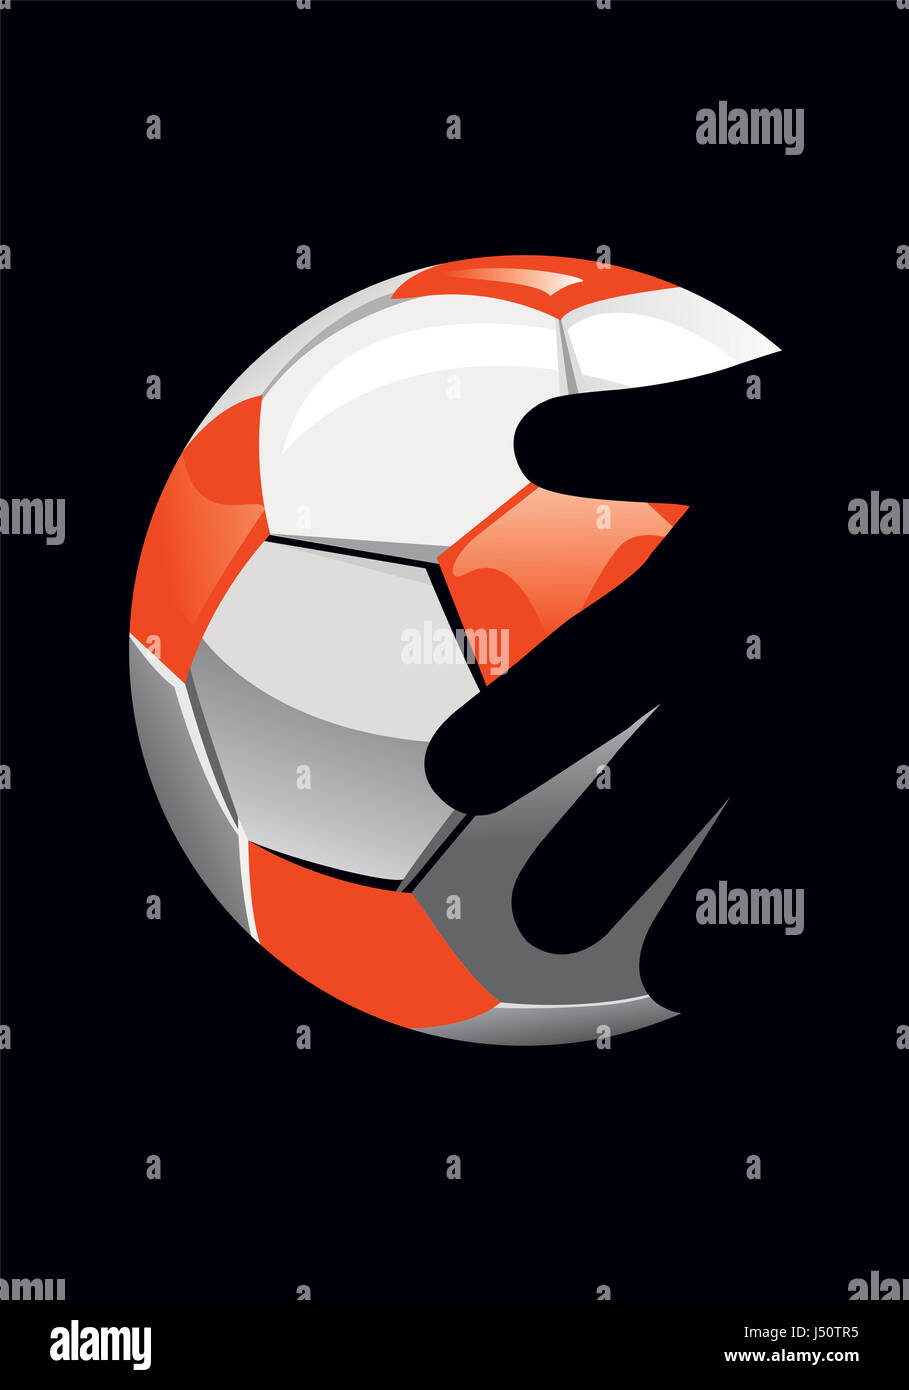 goalkeeper's hand and soccer ball on black background. - Stock Image